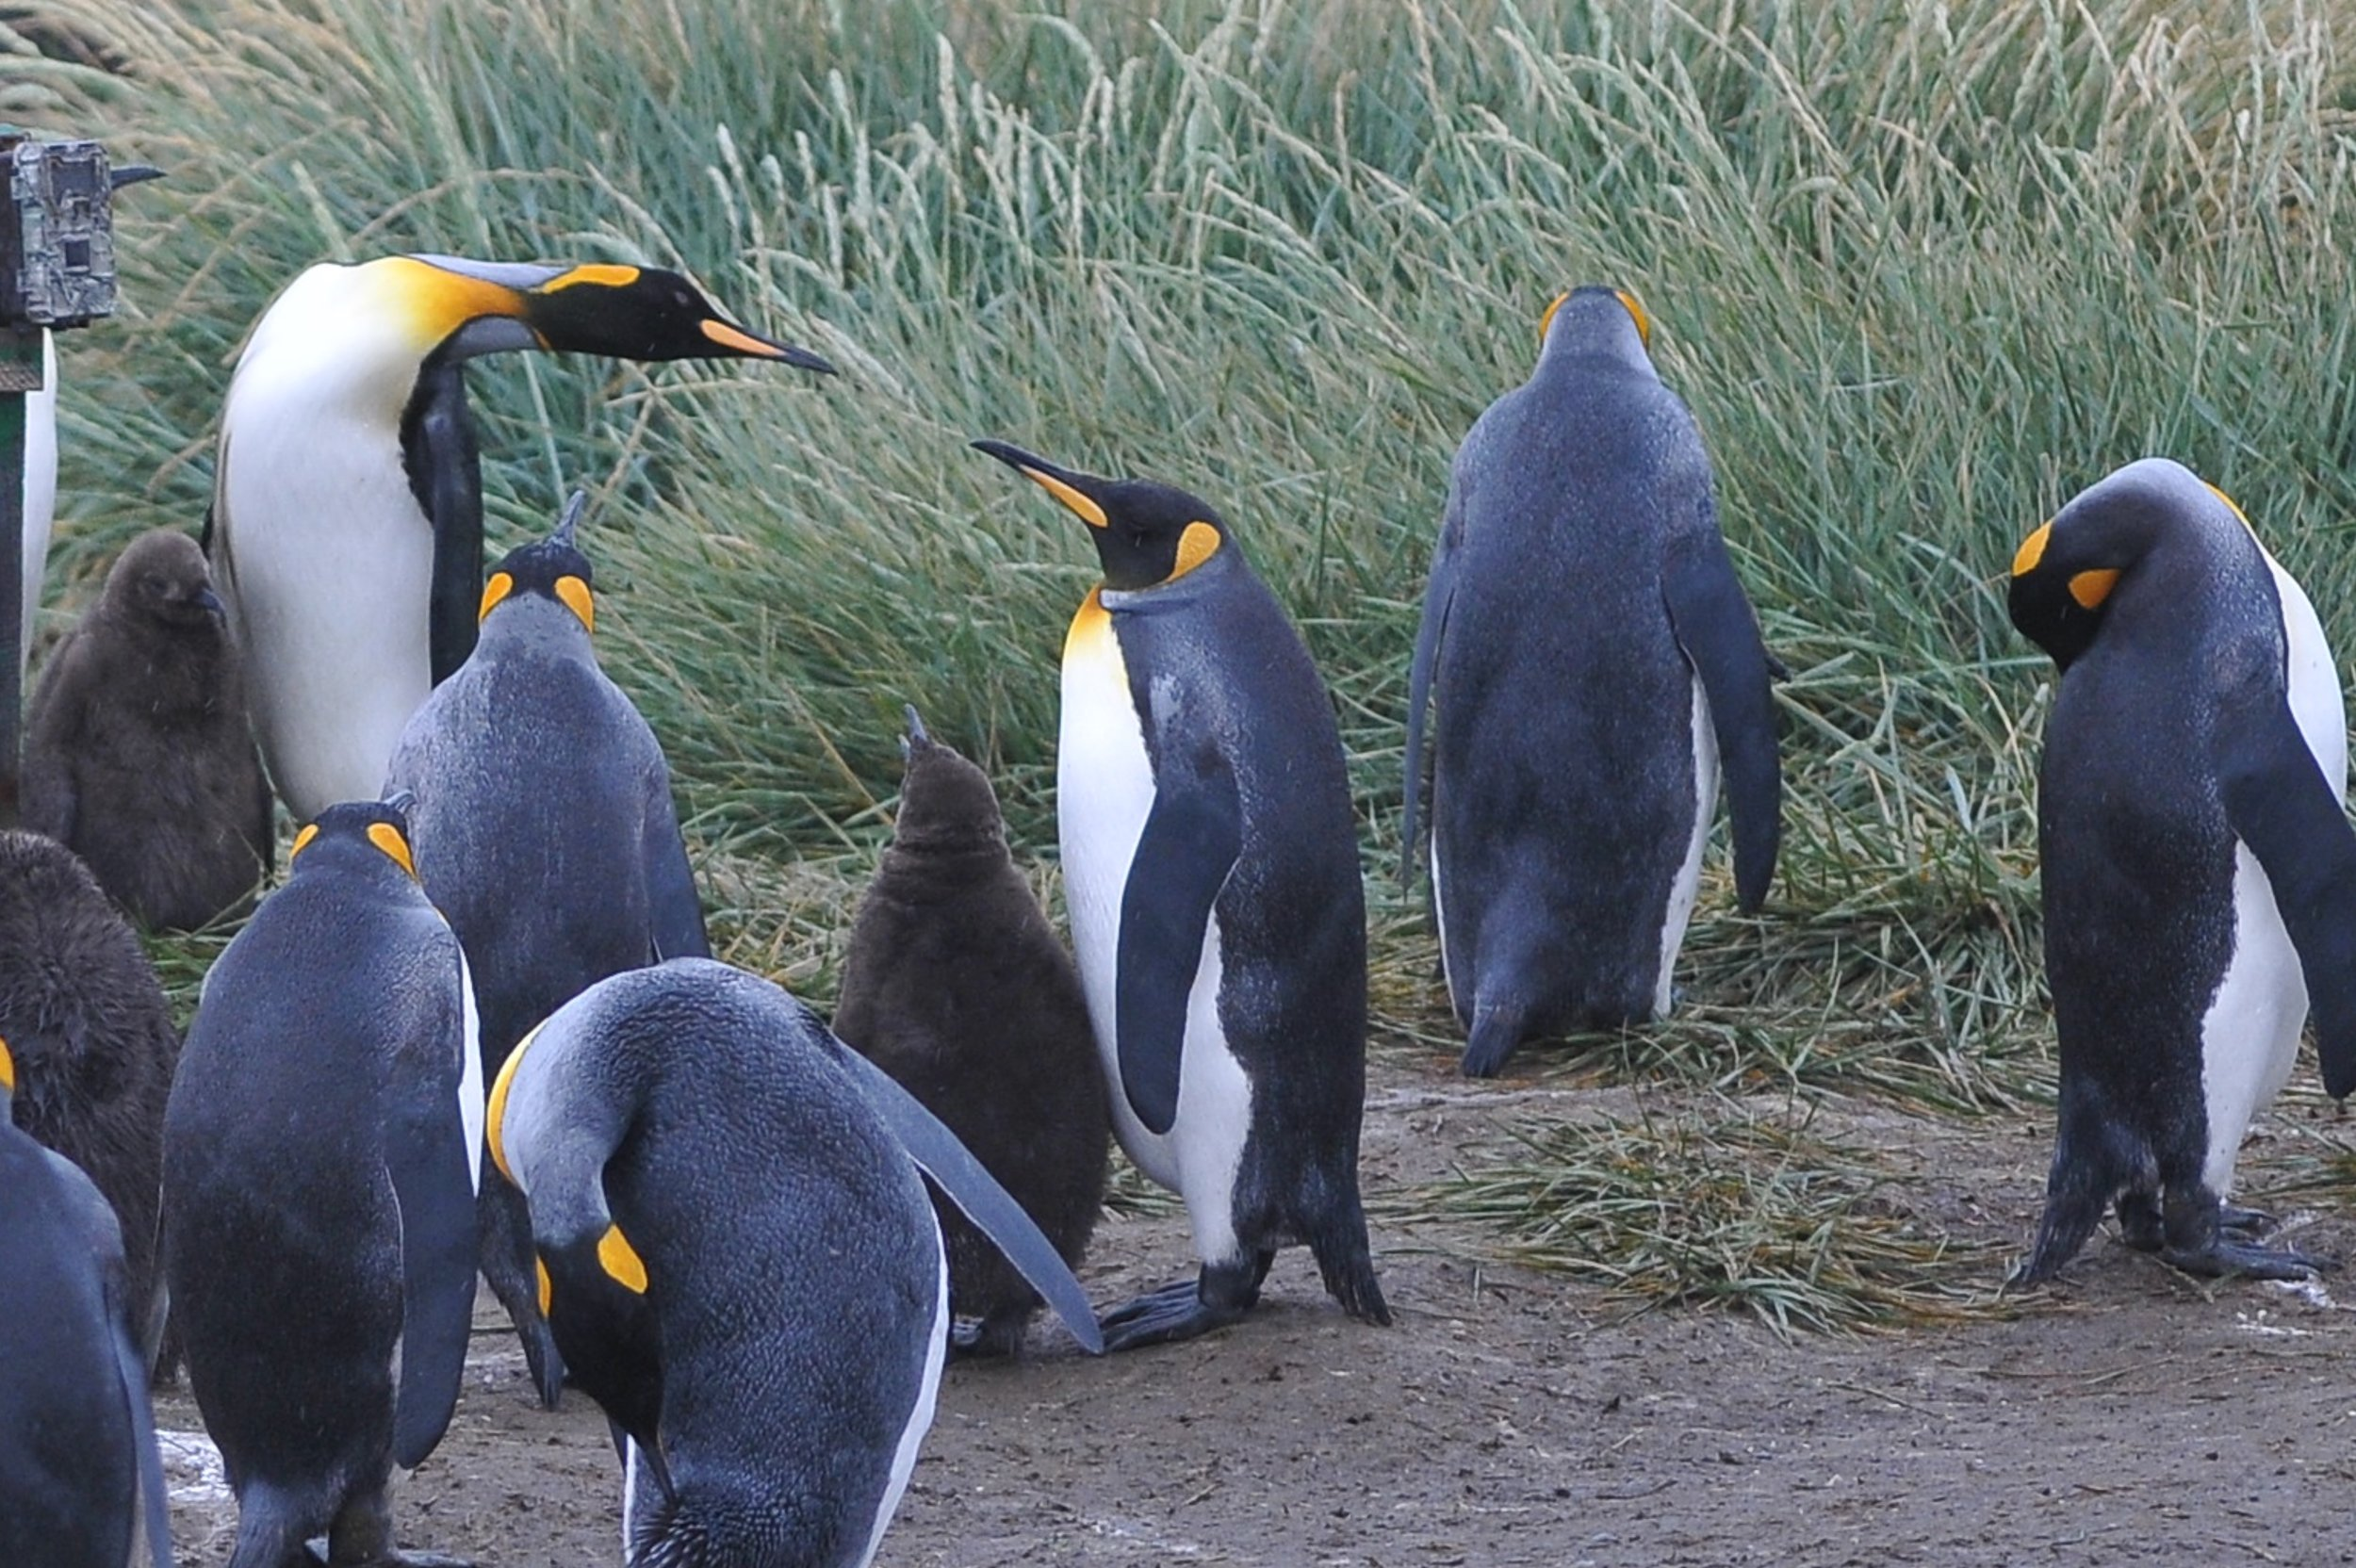 King Penguins in Chile's side of Tierra del Fuego.